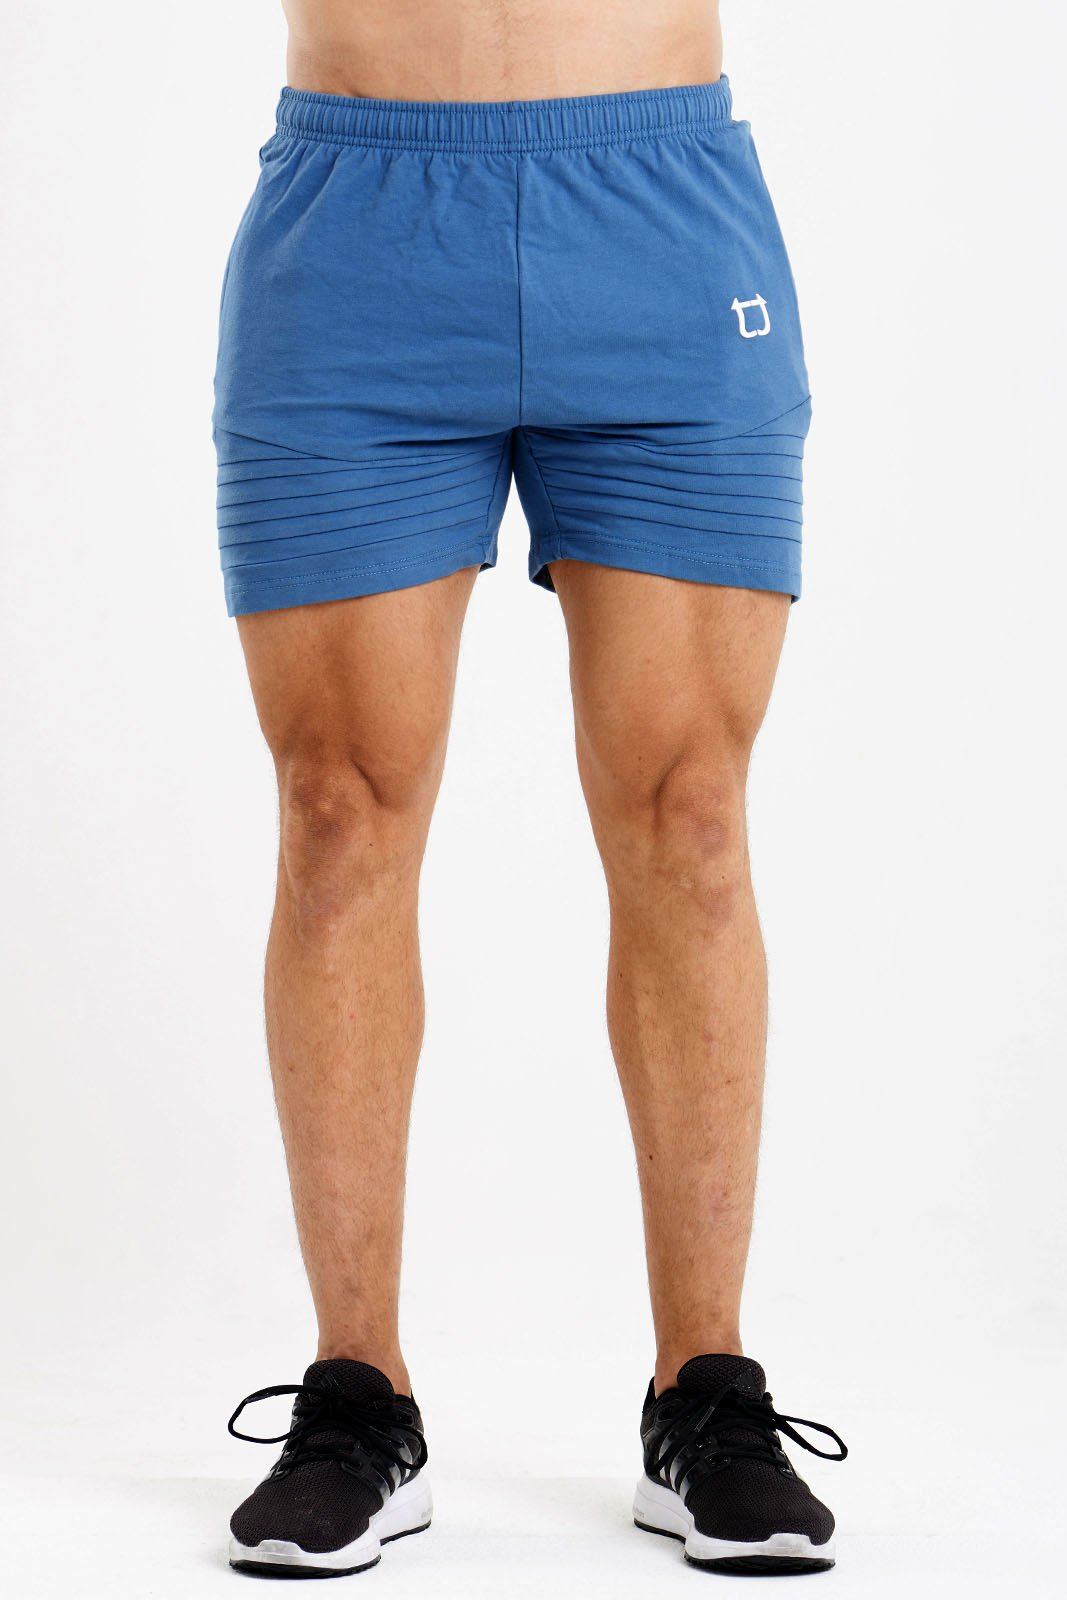 Twotags Ultra Sweat Shorts - Shadow Blue